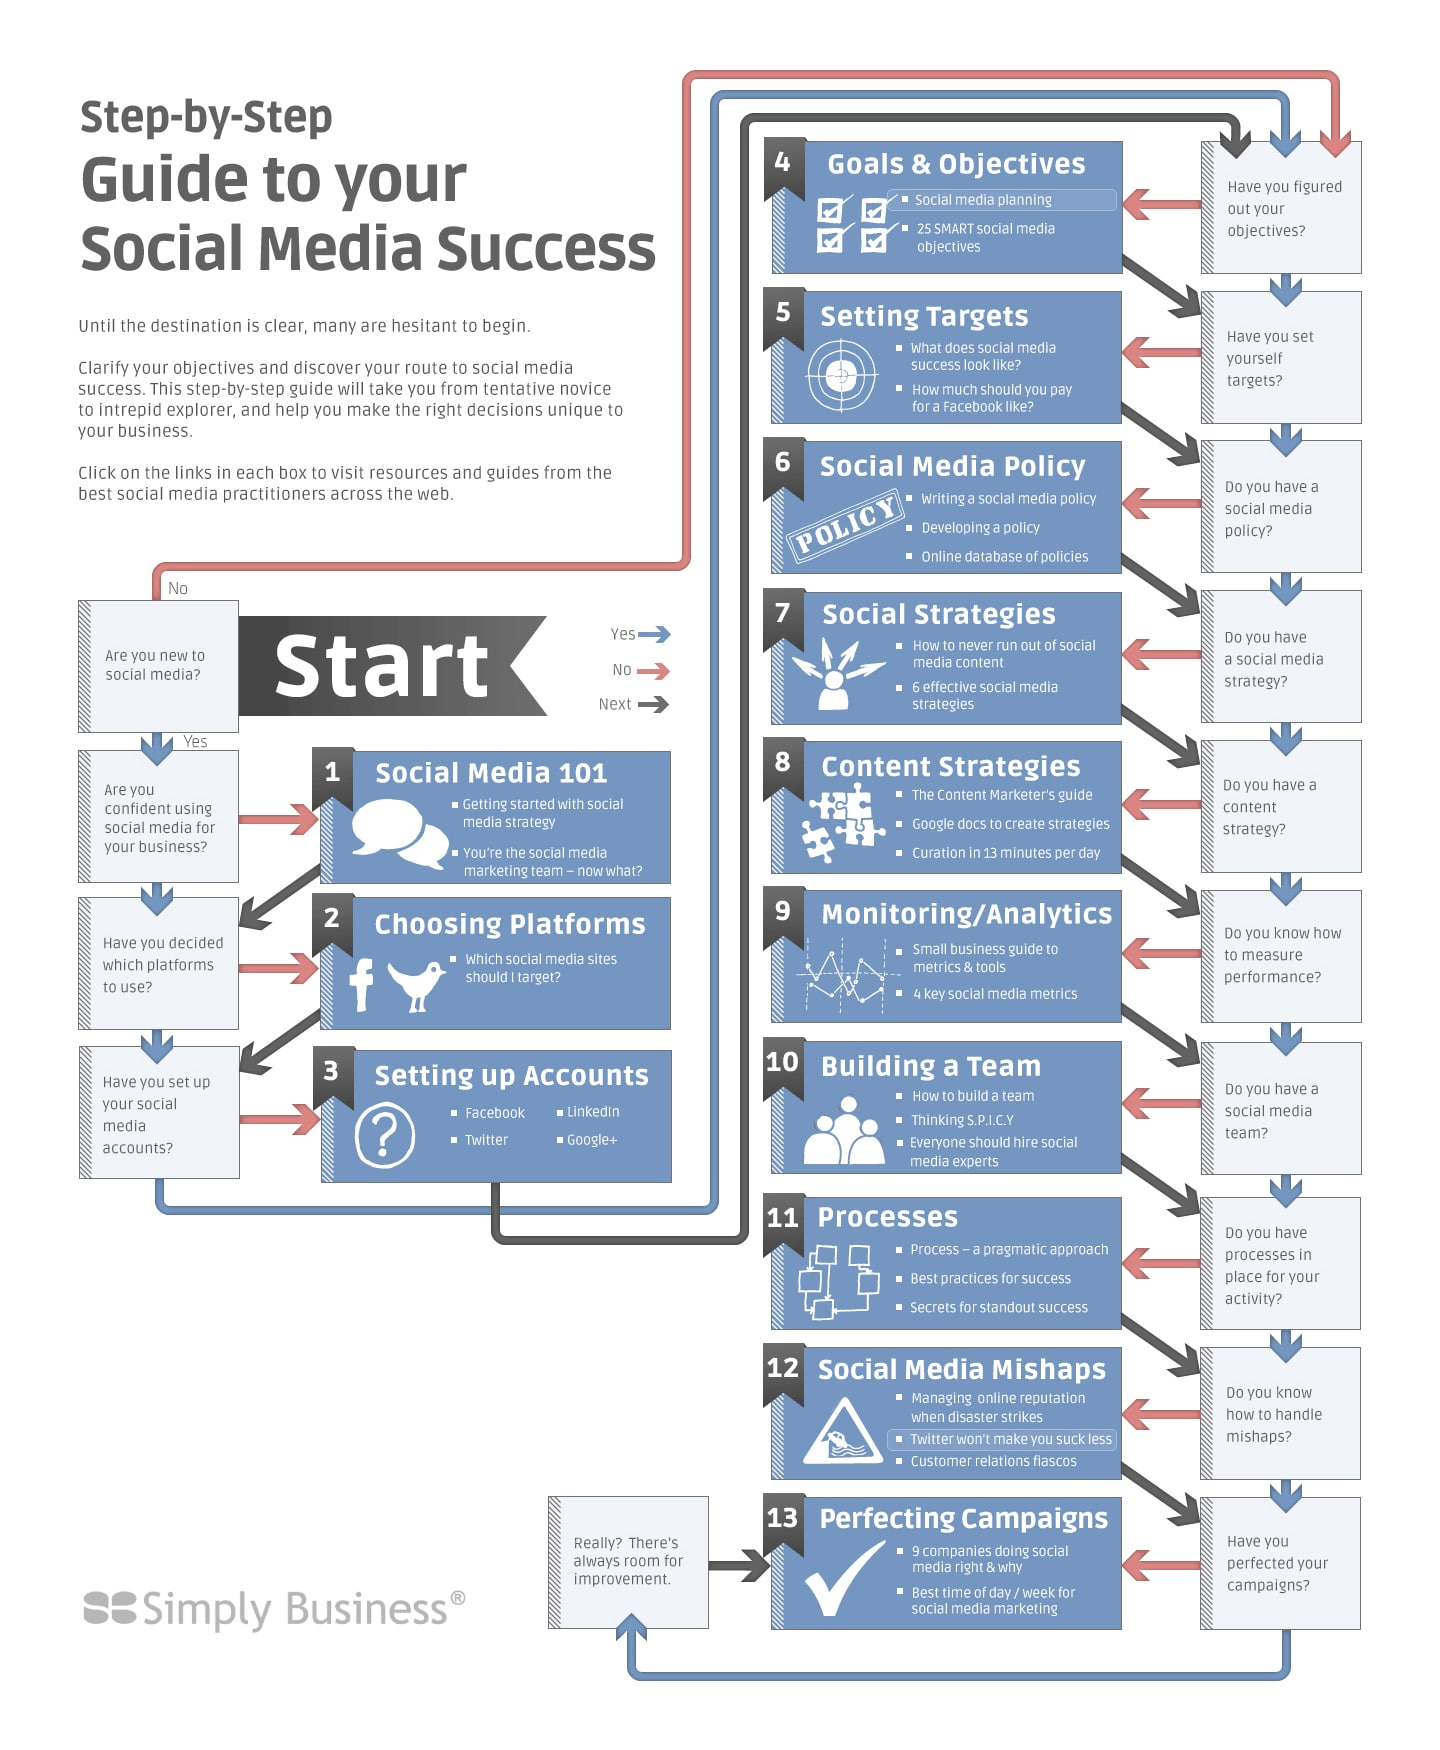 Step-By-Step Guide To Social Media Success [Flowchart]